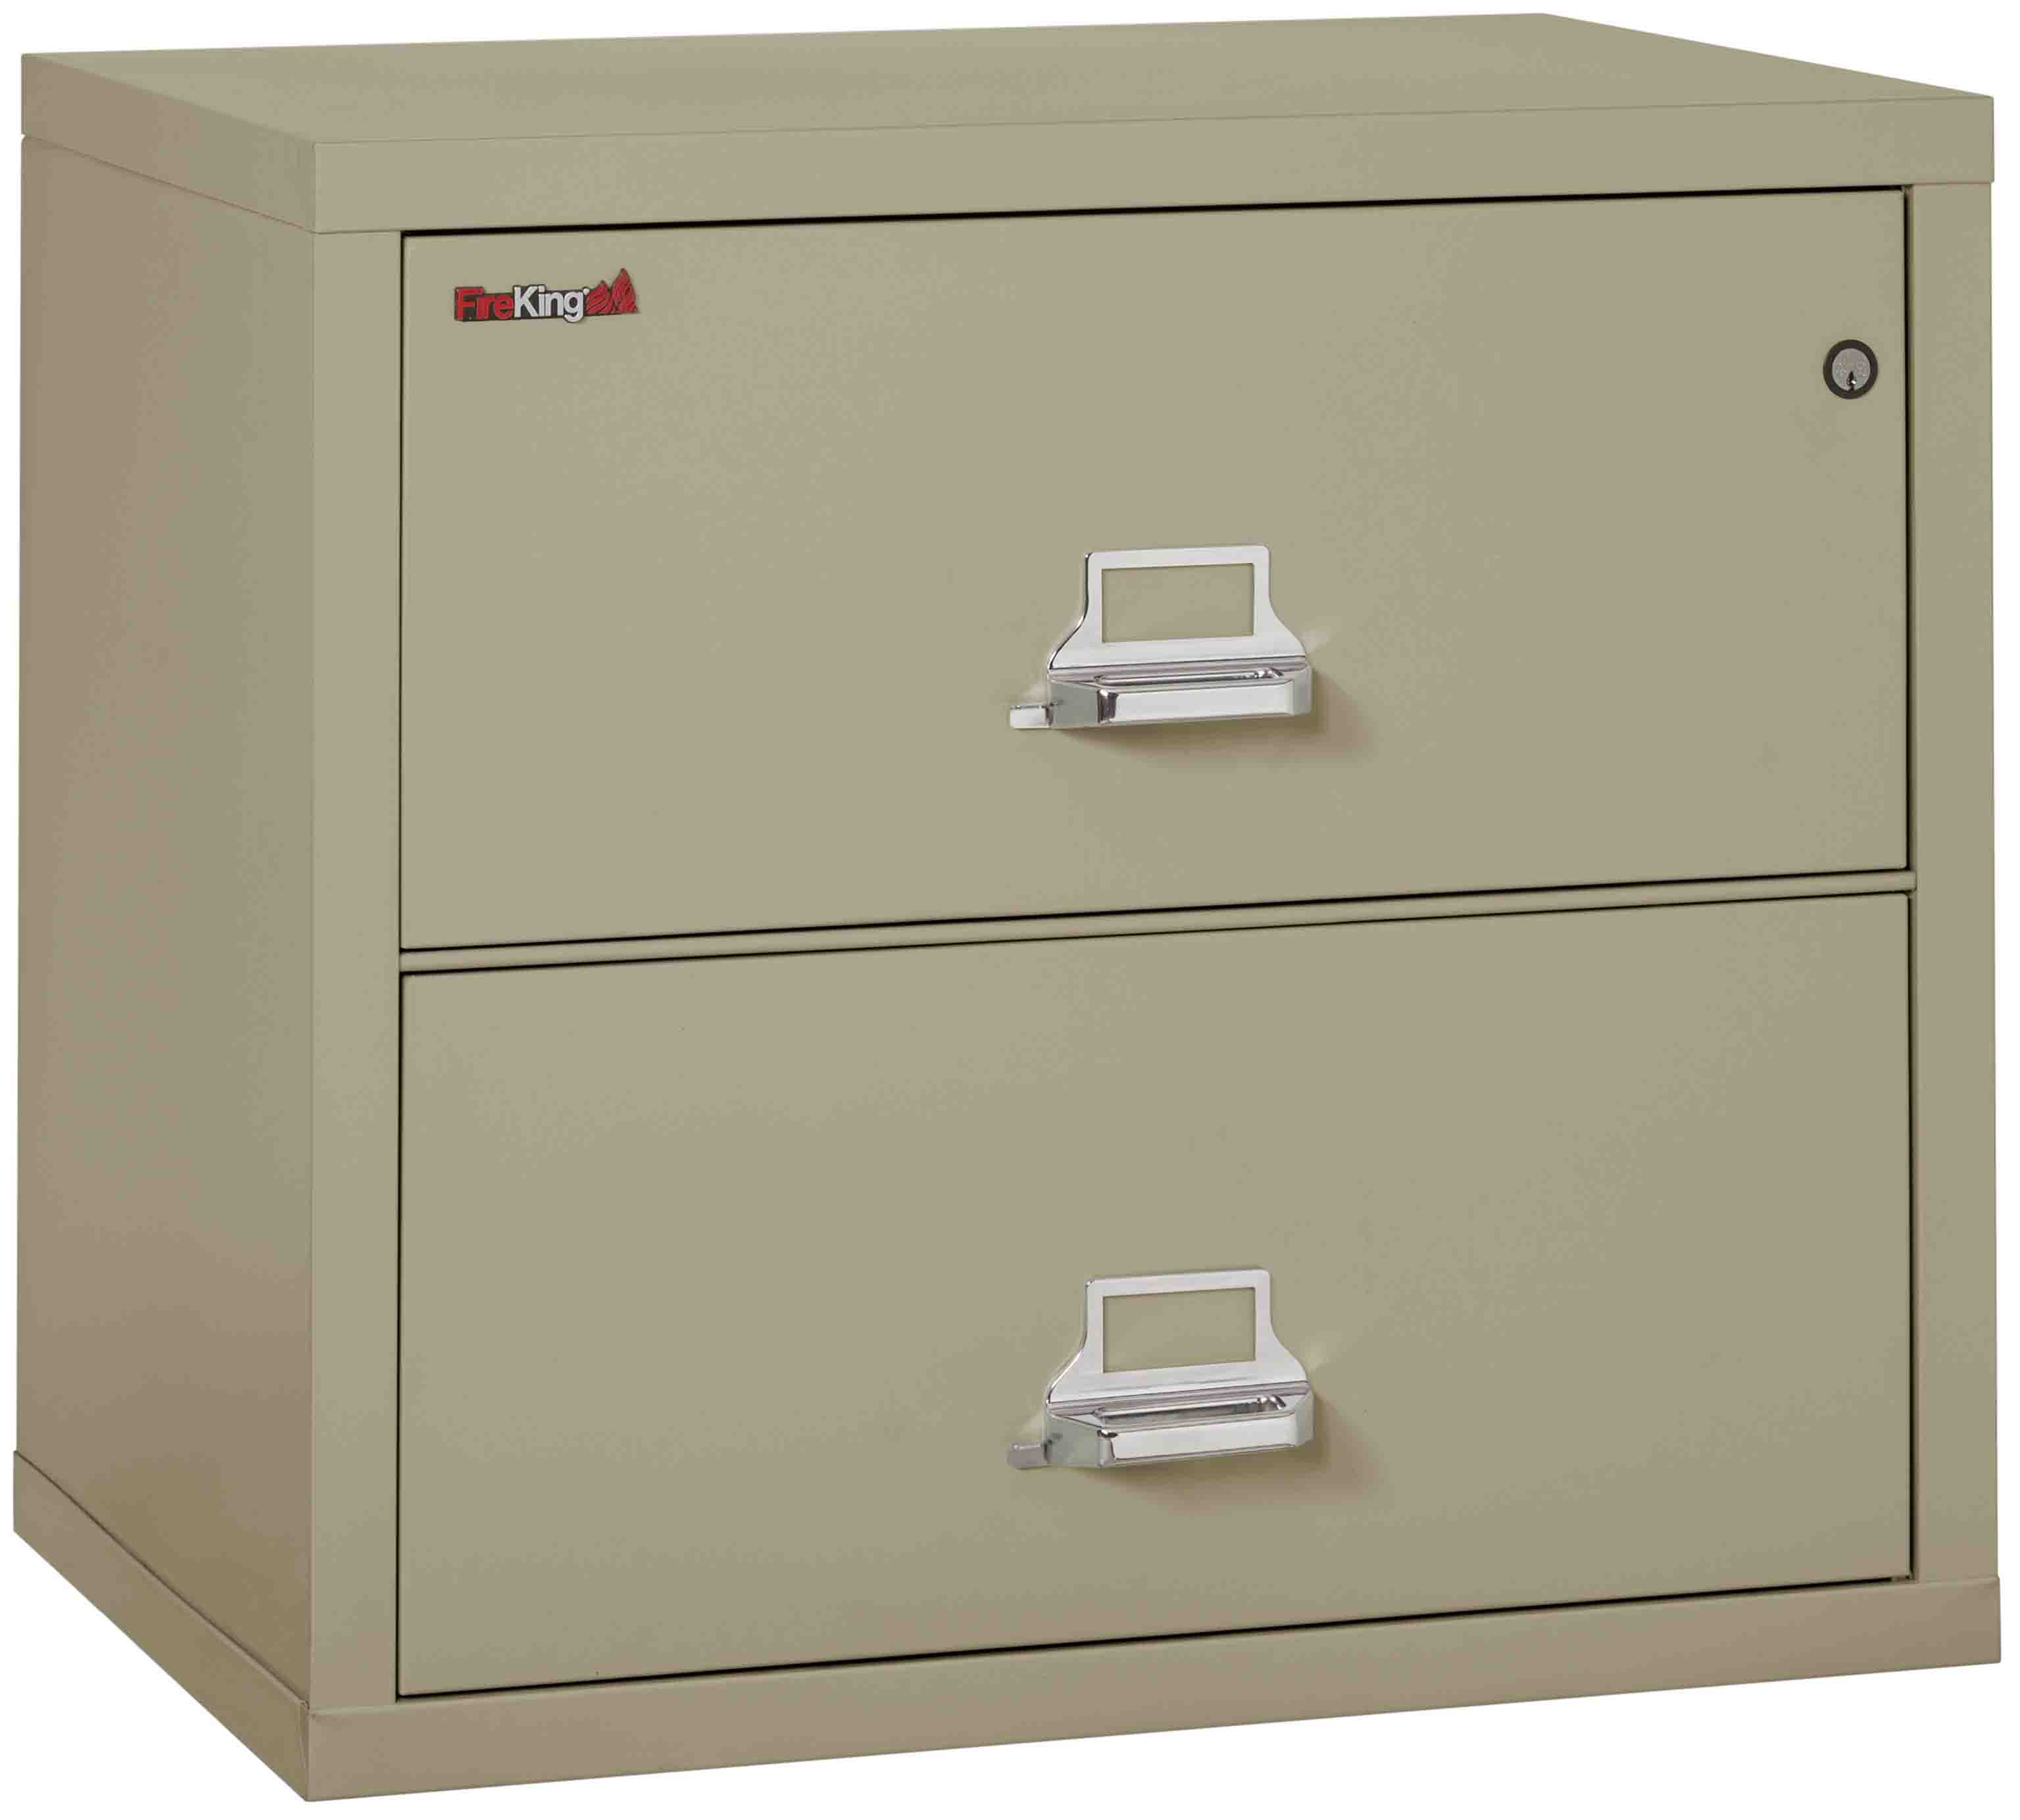 Fireking 2 Drawer Lateral File Cabinet Cabinets Matttroy